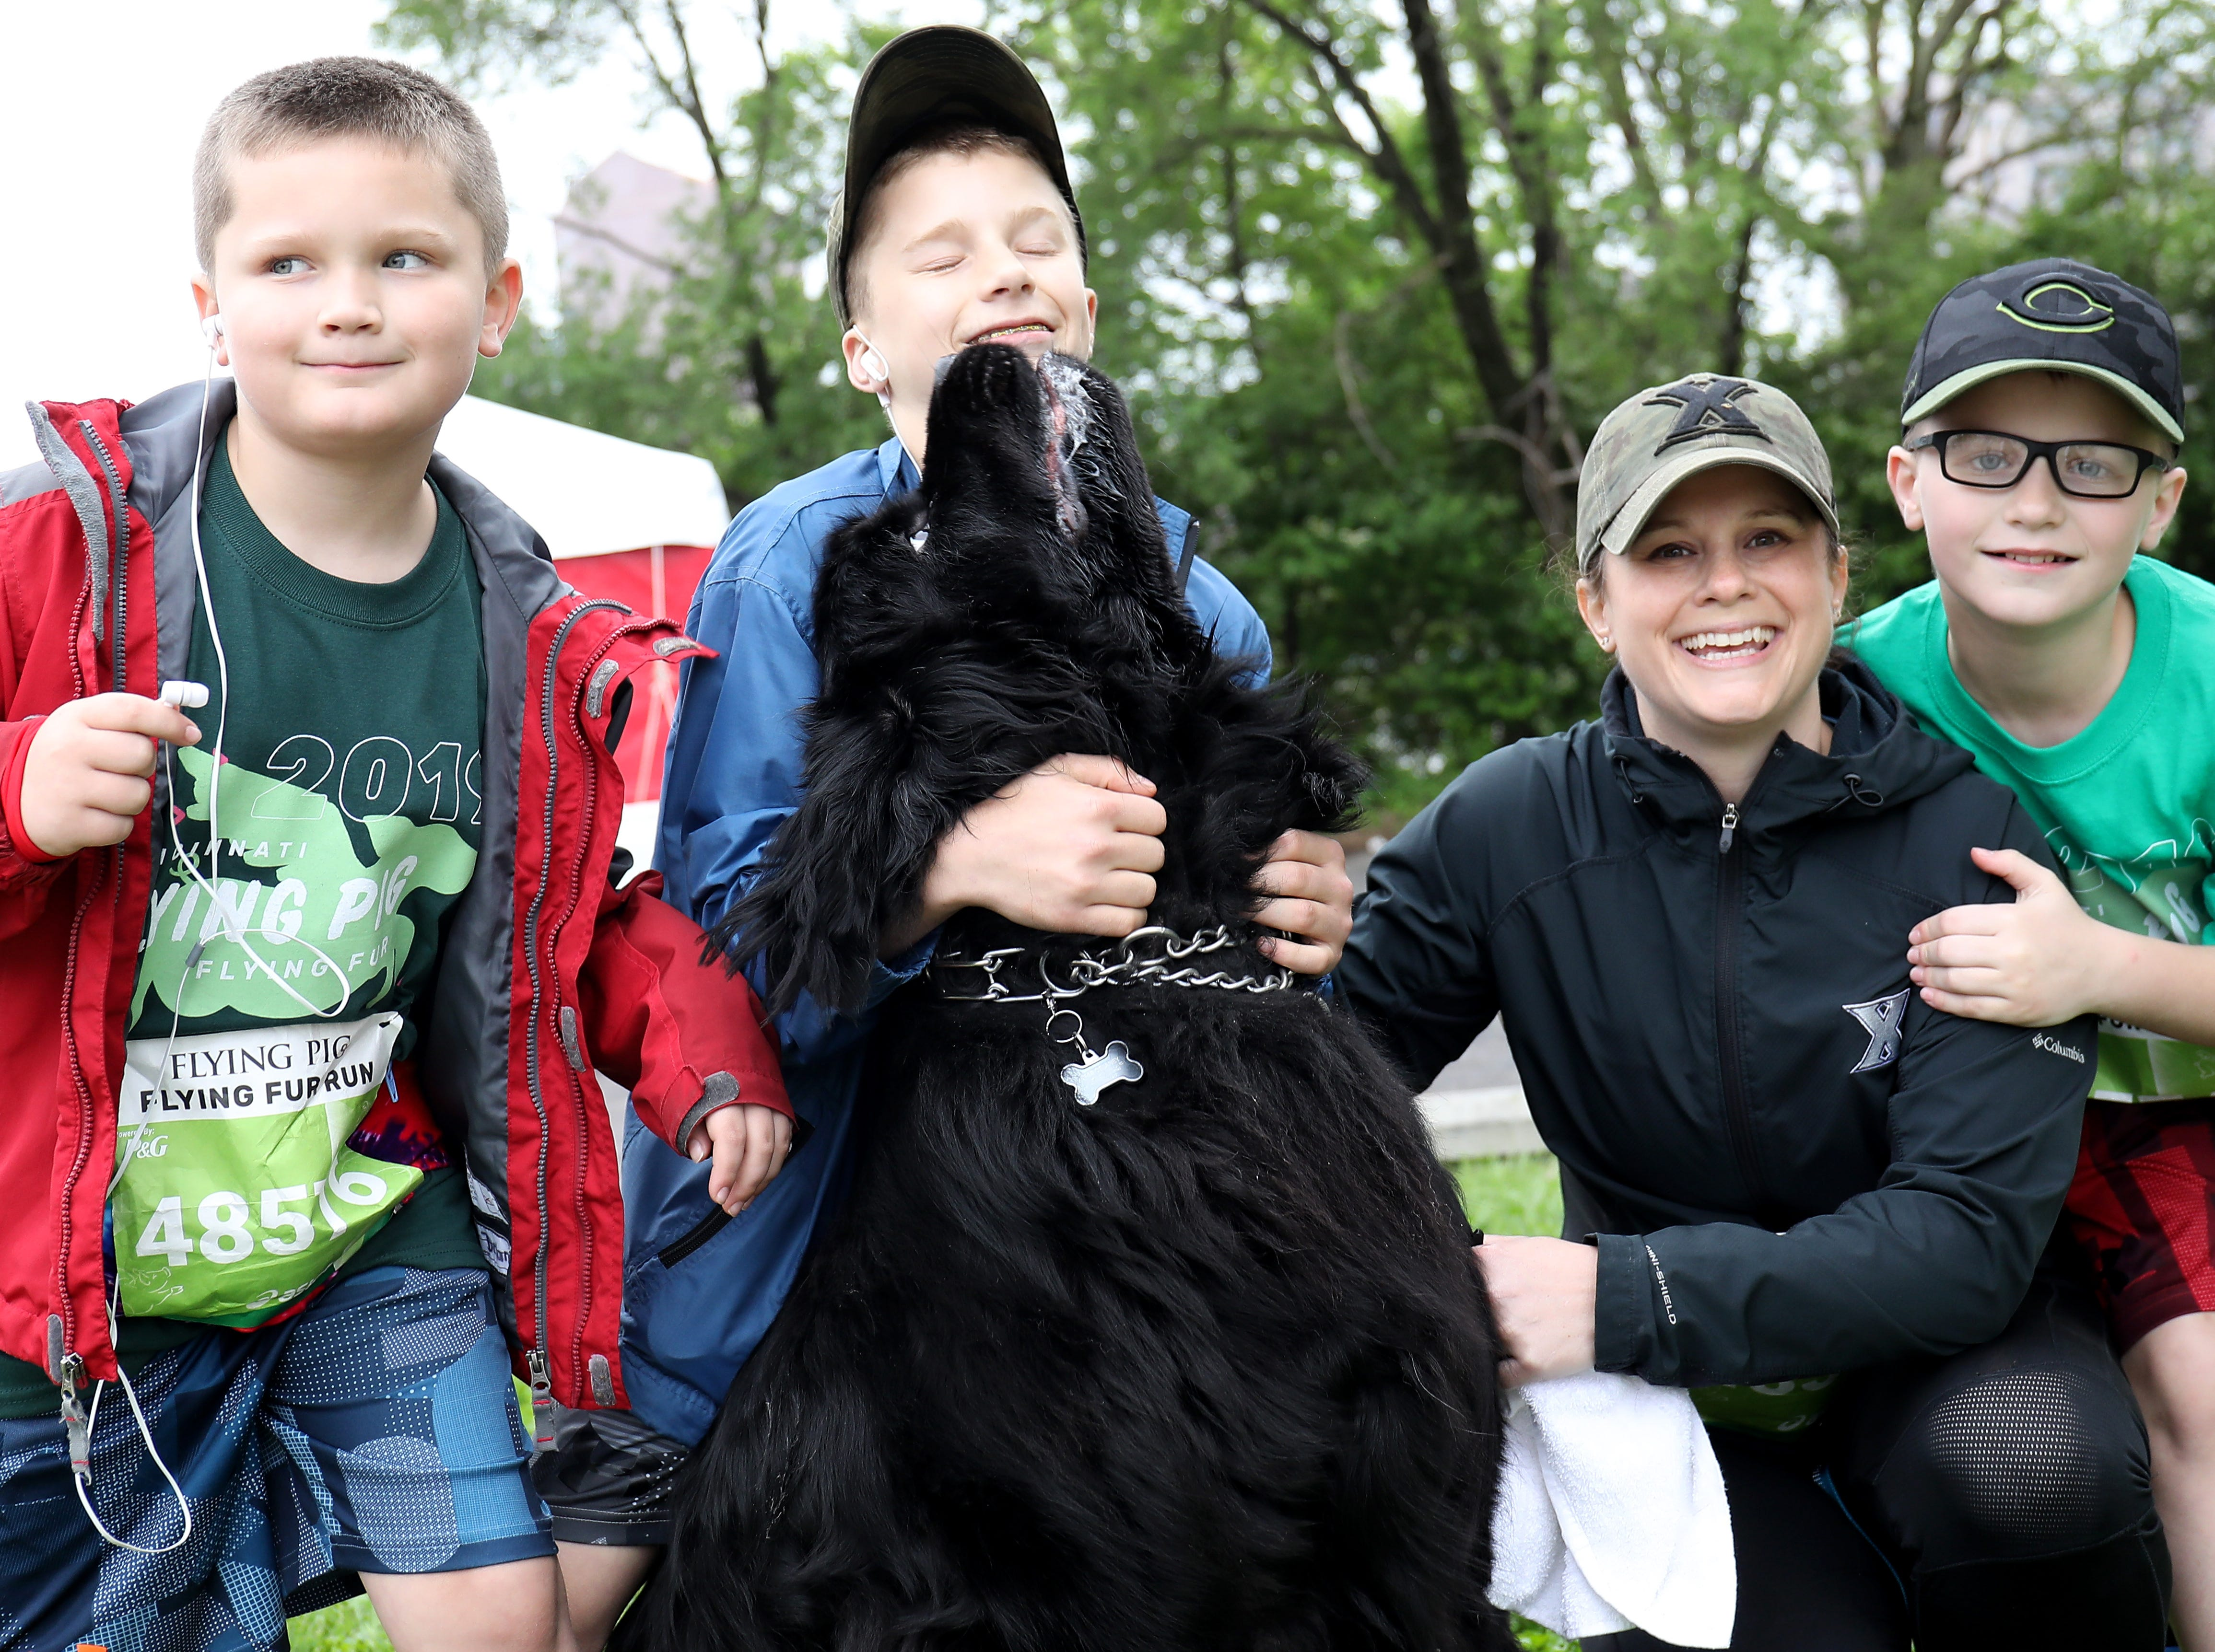 Bear (dog) with Jennifer  Delaney (mom)  Colin Brady, and Noah before  the Flying Fur race, Downtown Cincinnati Saturday, May 4,2019.